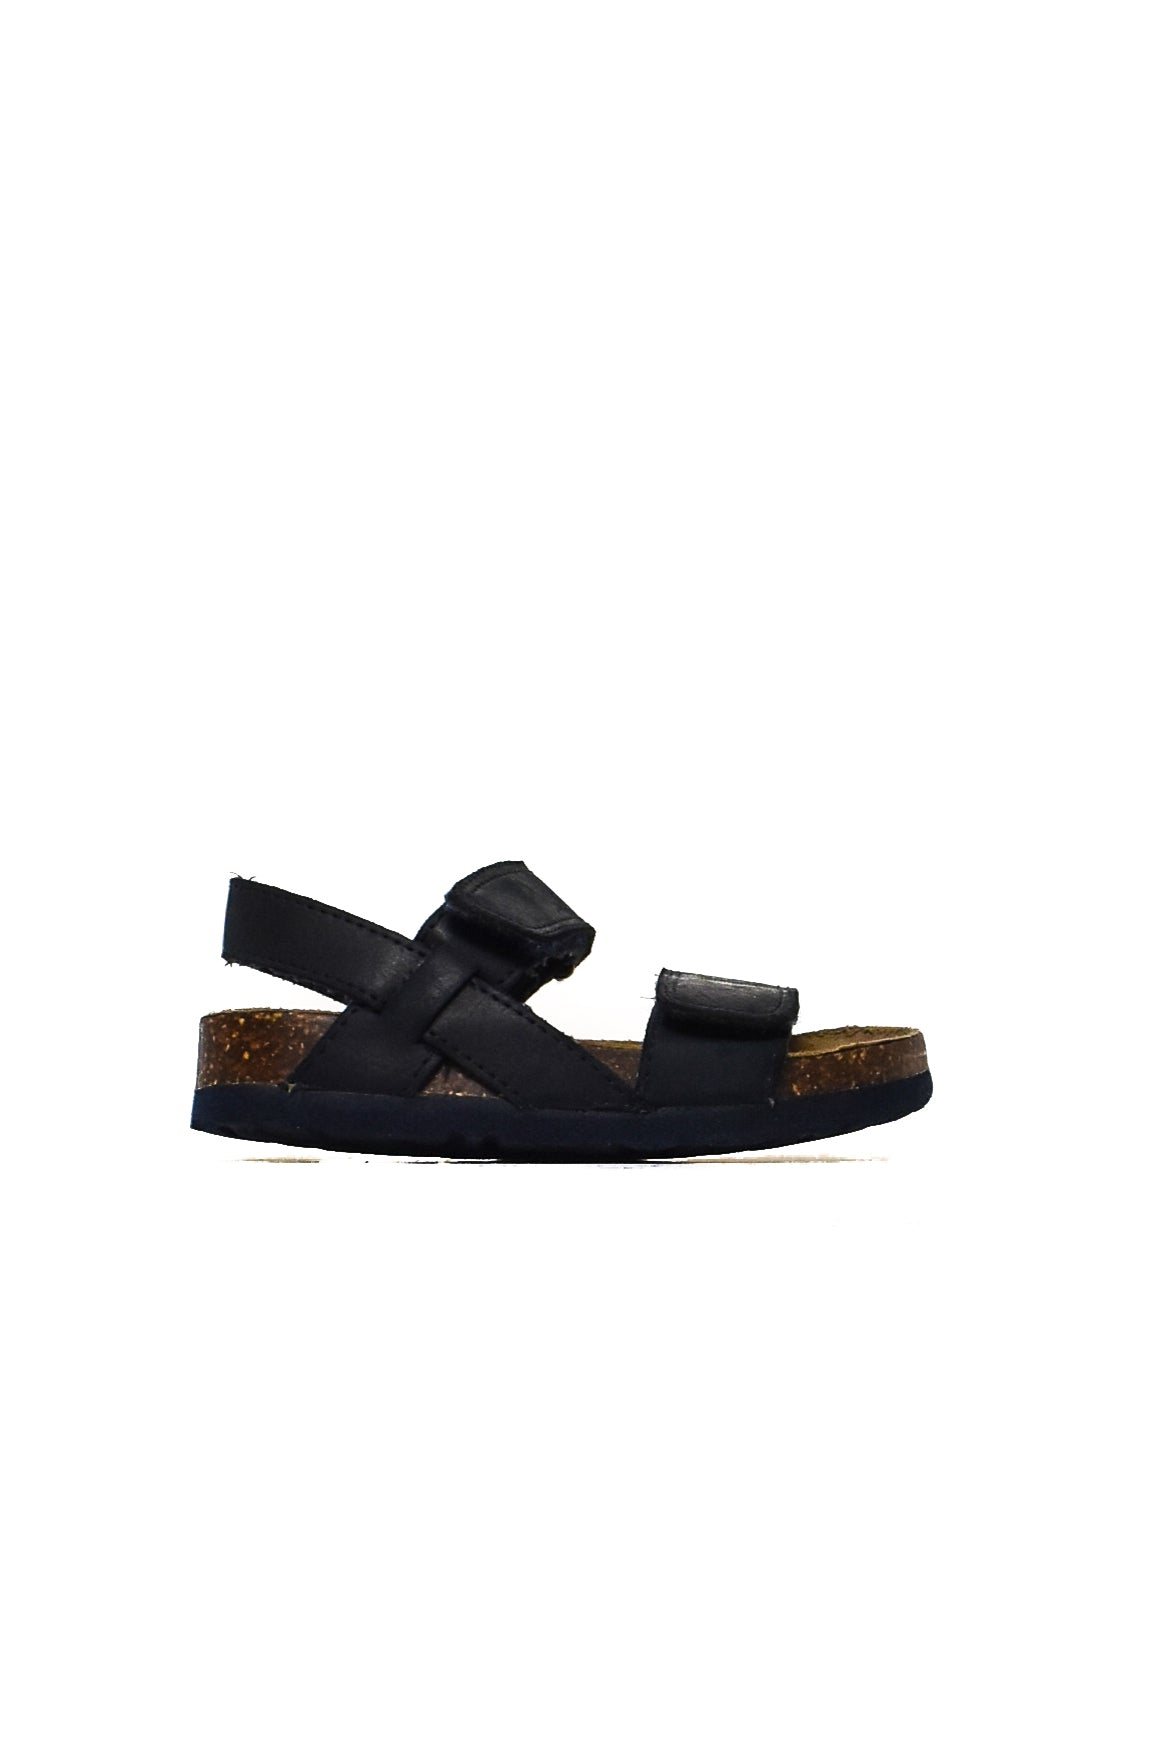 10007540 Seed Kids ~ Sandals 3T (EU 24) at Retykle